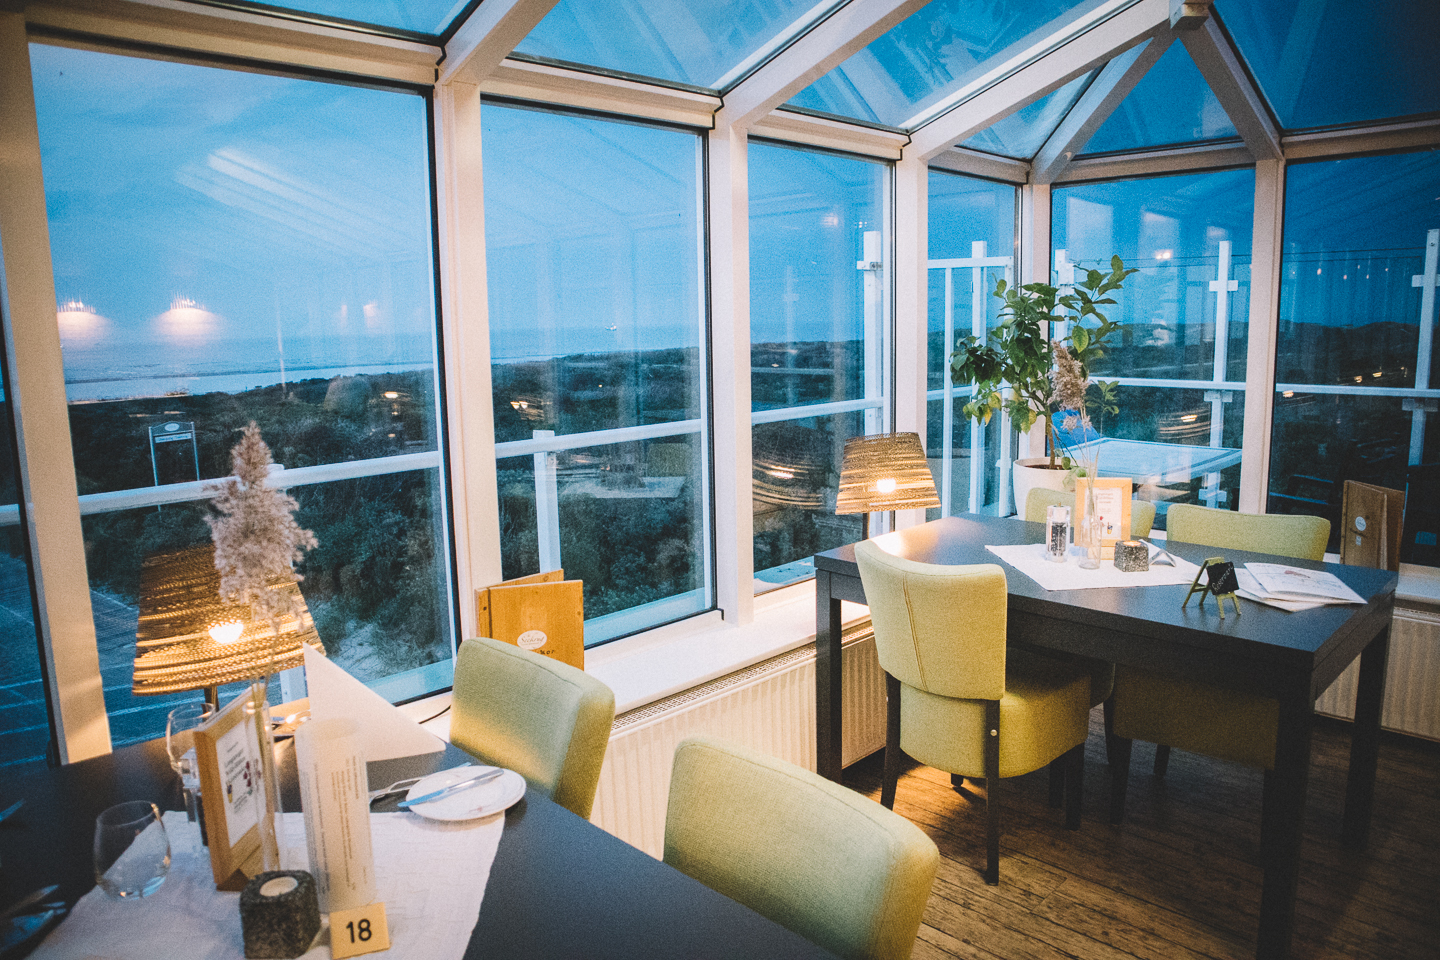 Panoramarestaurant-Seekrug-auf-Langeoog